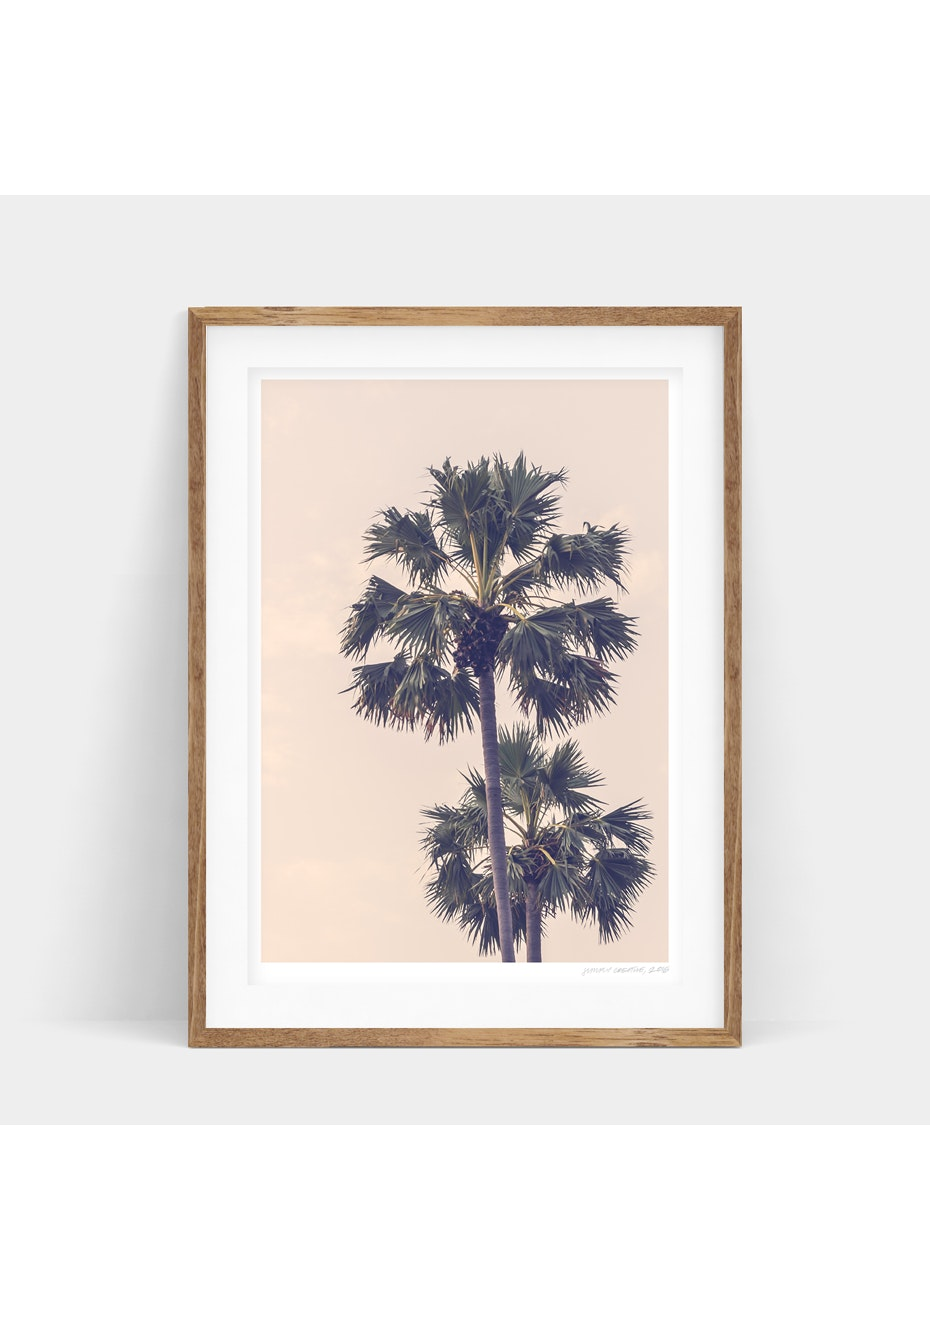 Simply Creative - Peach Palms - A3 Monochrome Print